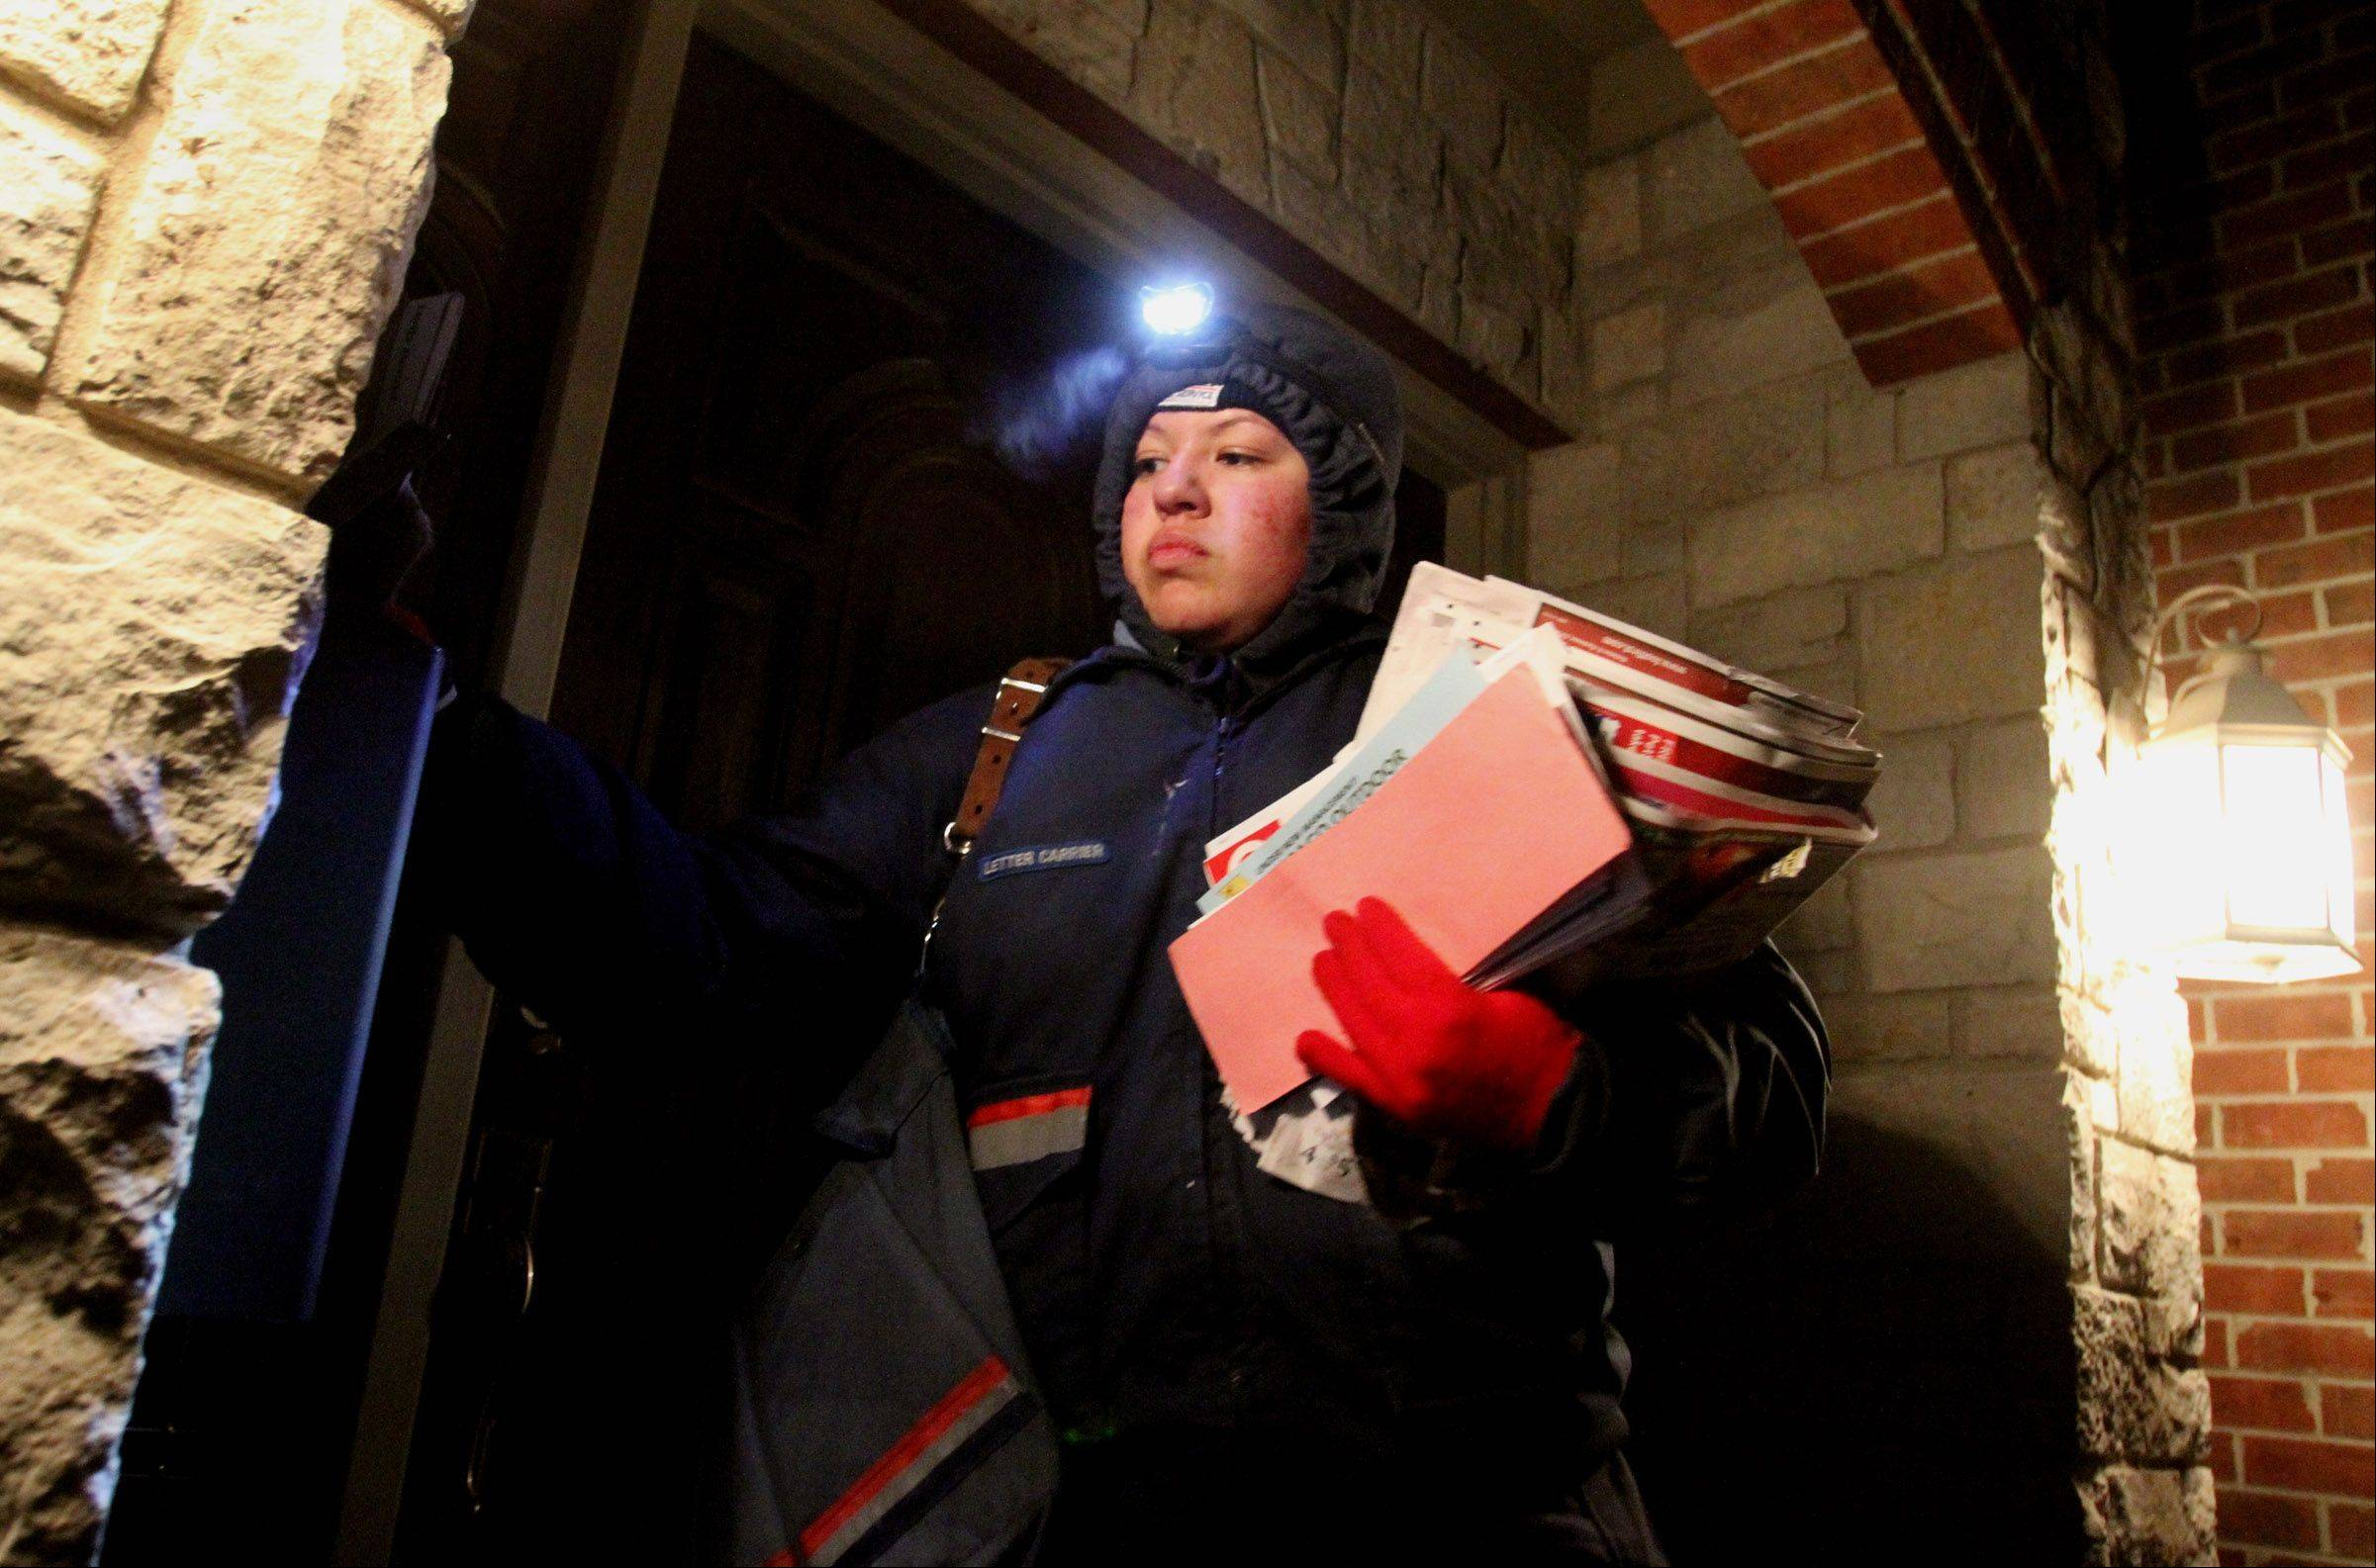 Mount Prospect postal carrier Lidia Garcia looks at addresses using a headlamp as she delivers mail to homes just southeast of the post office between 5 and 6 p.m. on a winter day.